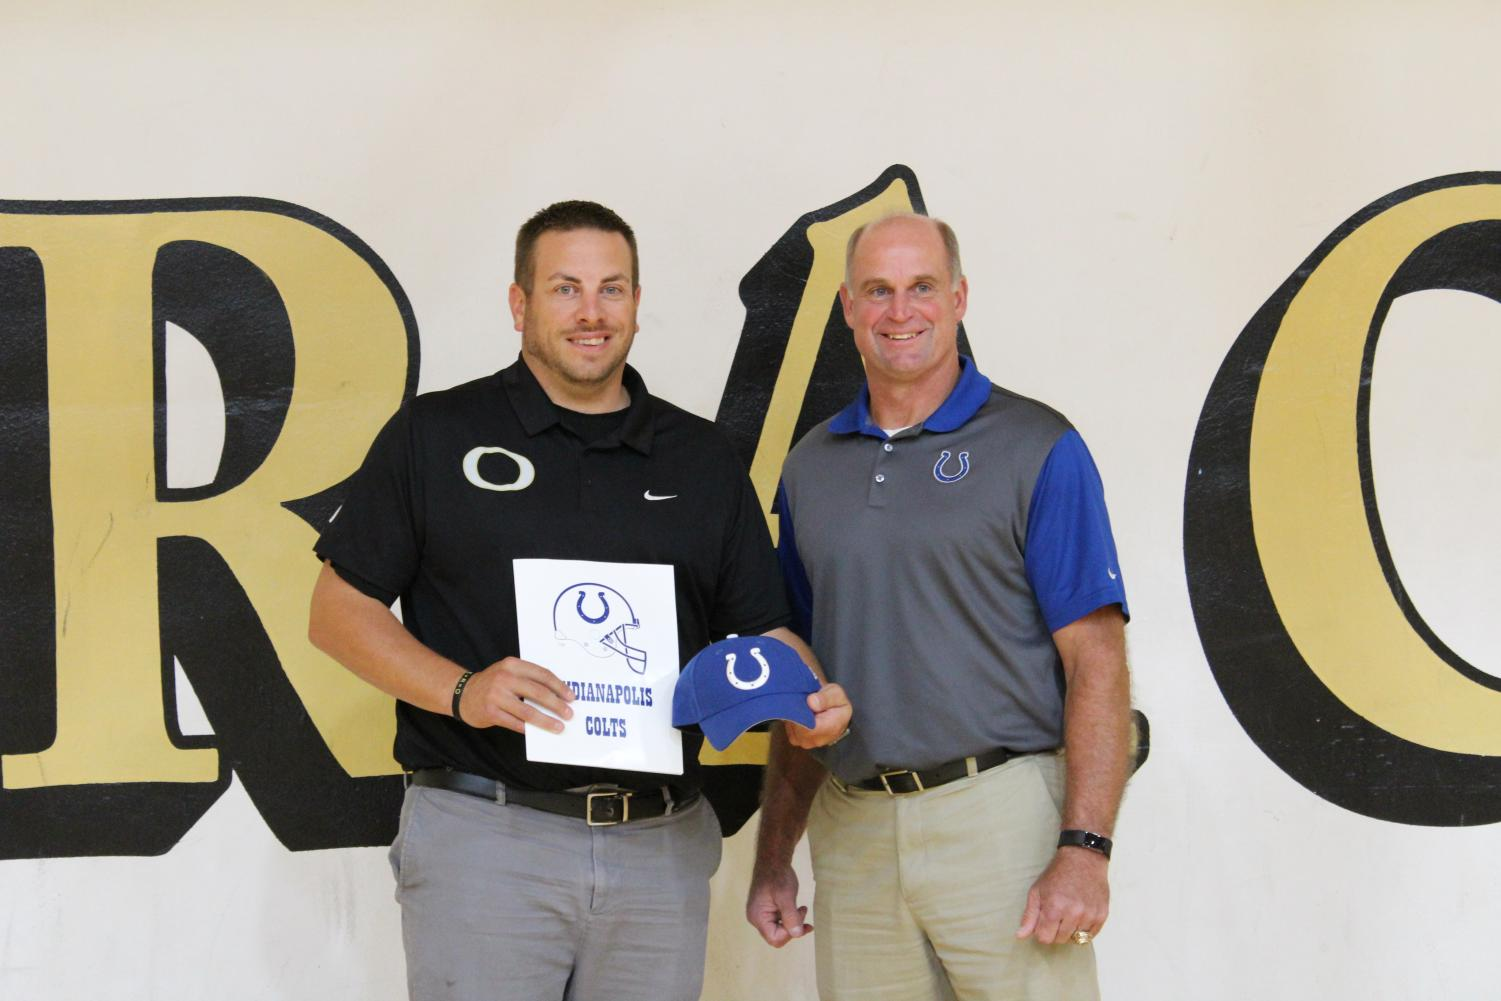 Mike Prior, former Super Bowl champion, presents Strasser with the Colts' Week 7 Coach of the Week award